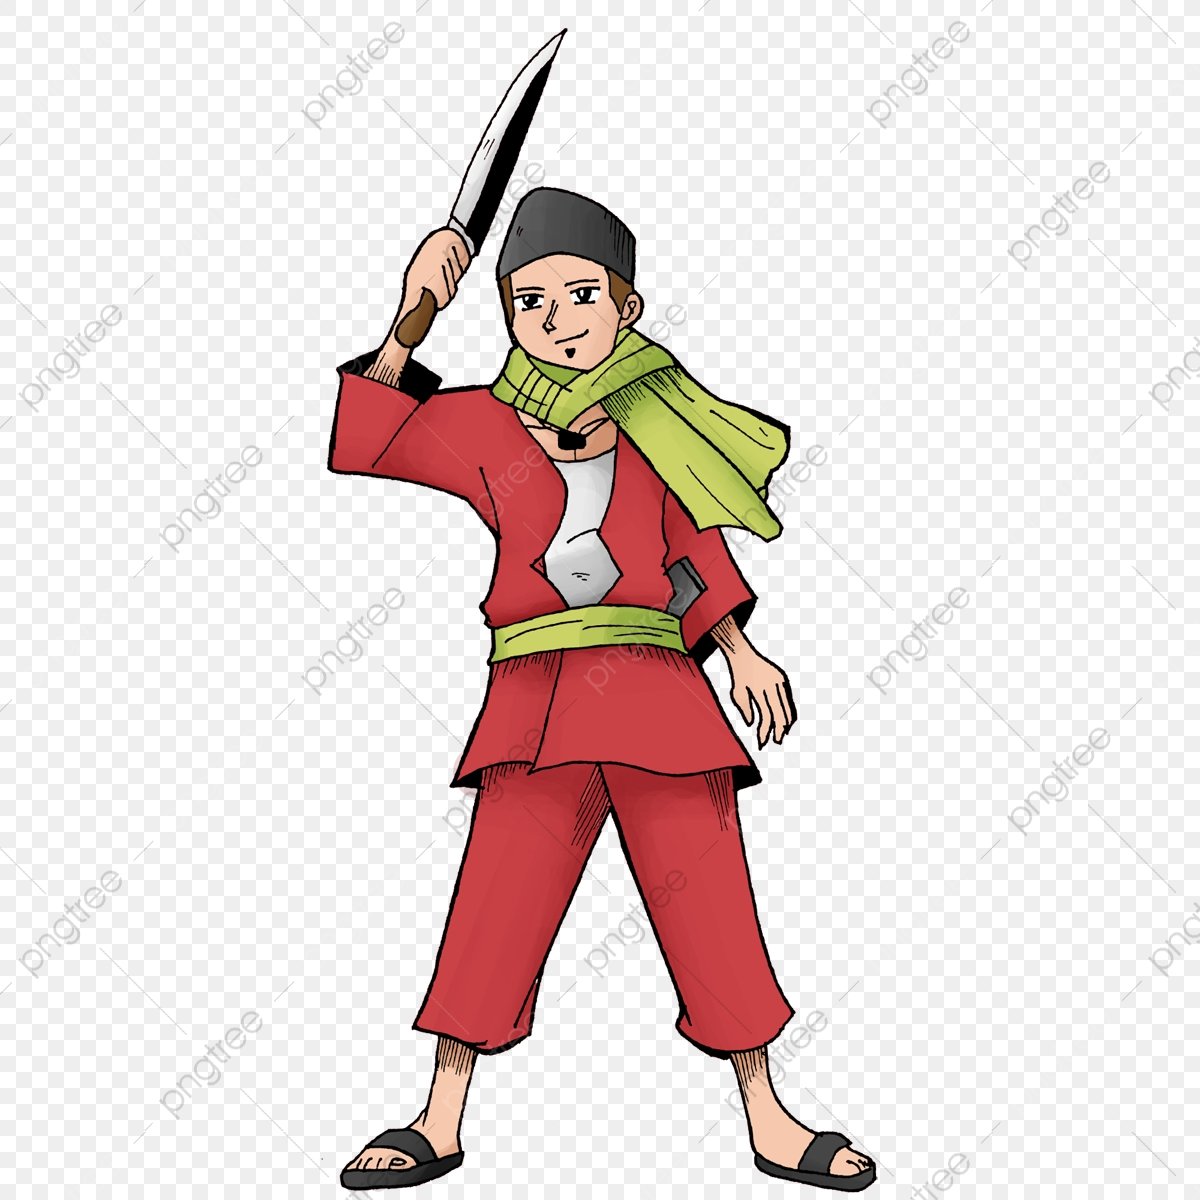 Download free perguruan pencak silat satria muda indonesia vector logo and icons in ai, eps, cdr,. Pencak Silat Png Images Vector And Psd Files Free Download On Pngtree